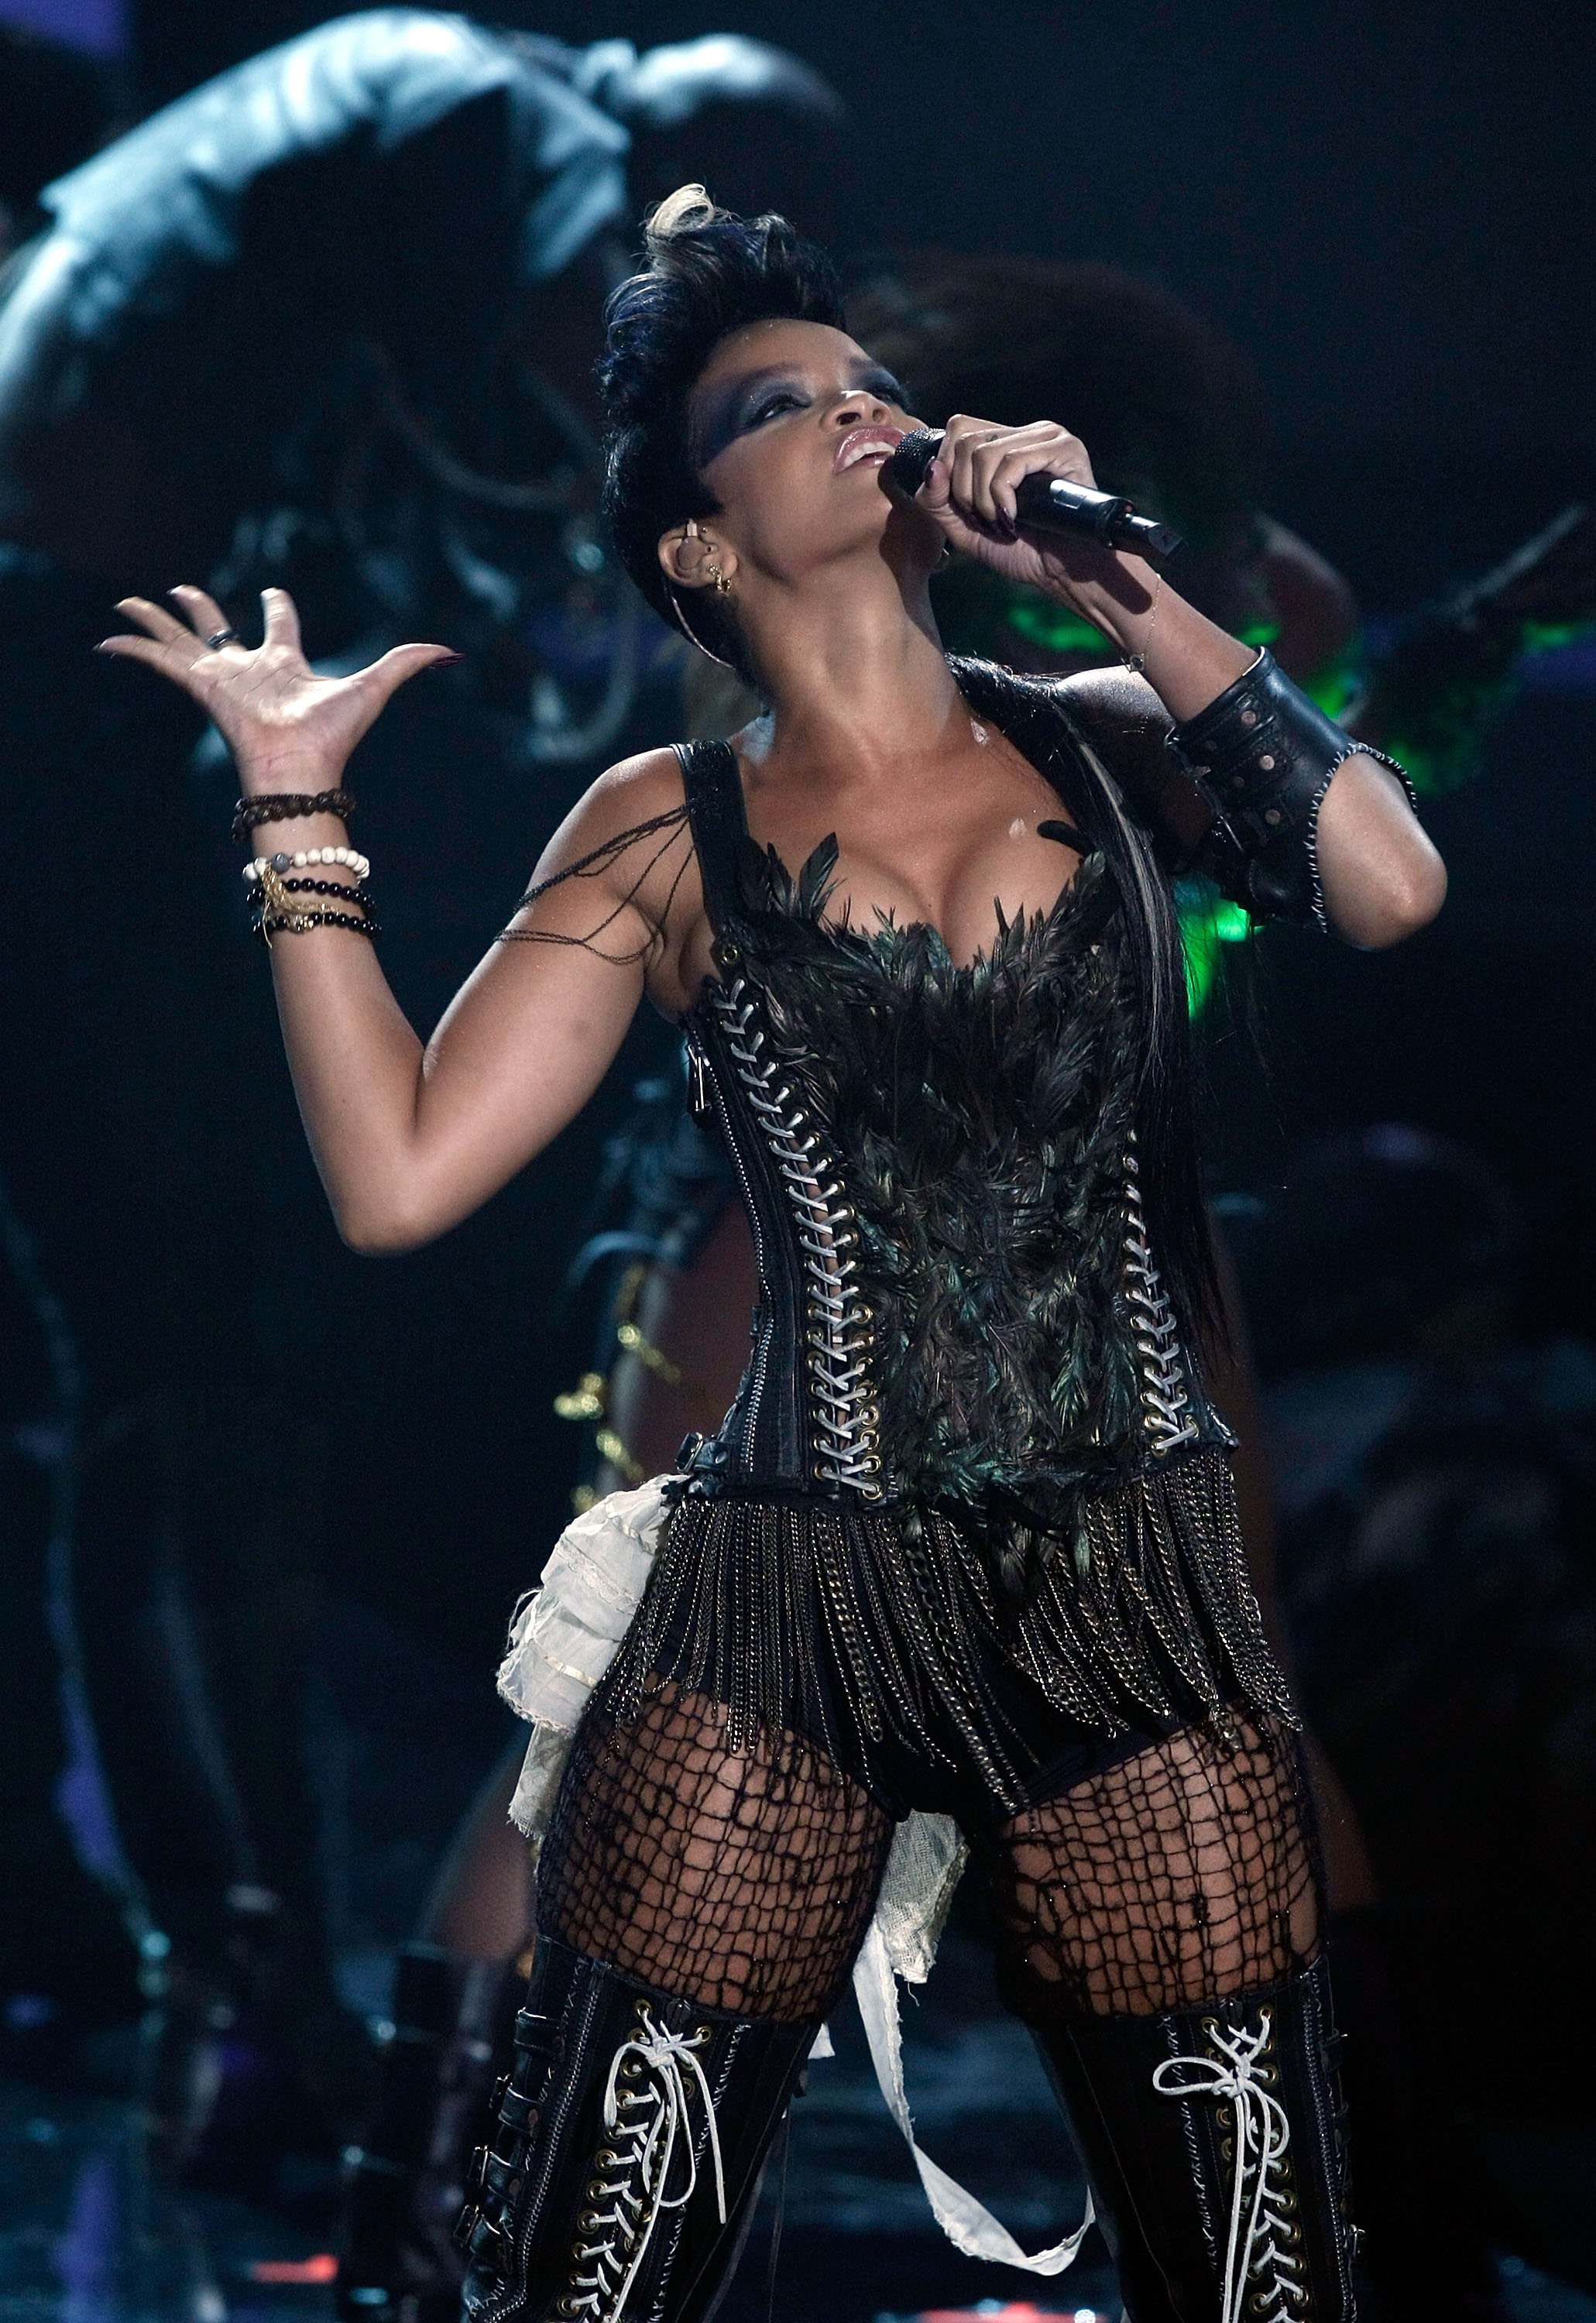 38540_Celebutopia-Rihanna_performs_at_the_2008_MTV_Video_Music_Awards-05_122_107lo.jpg